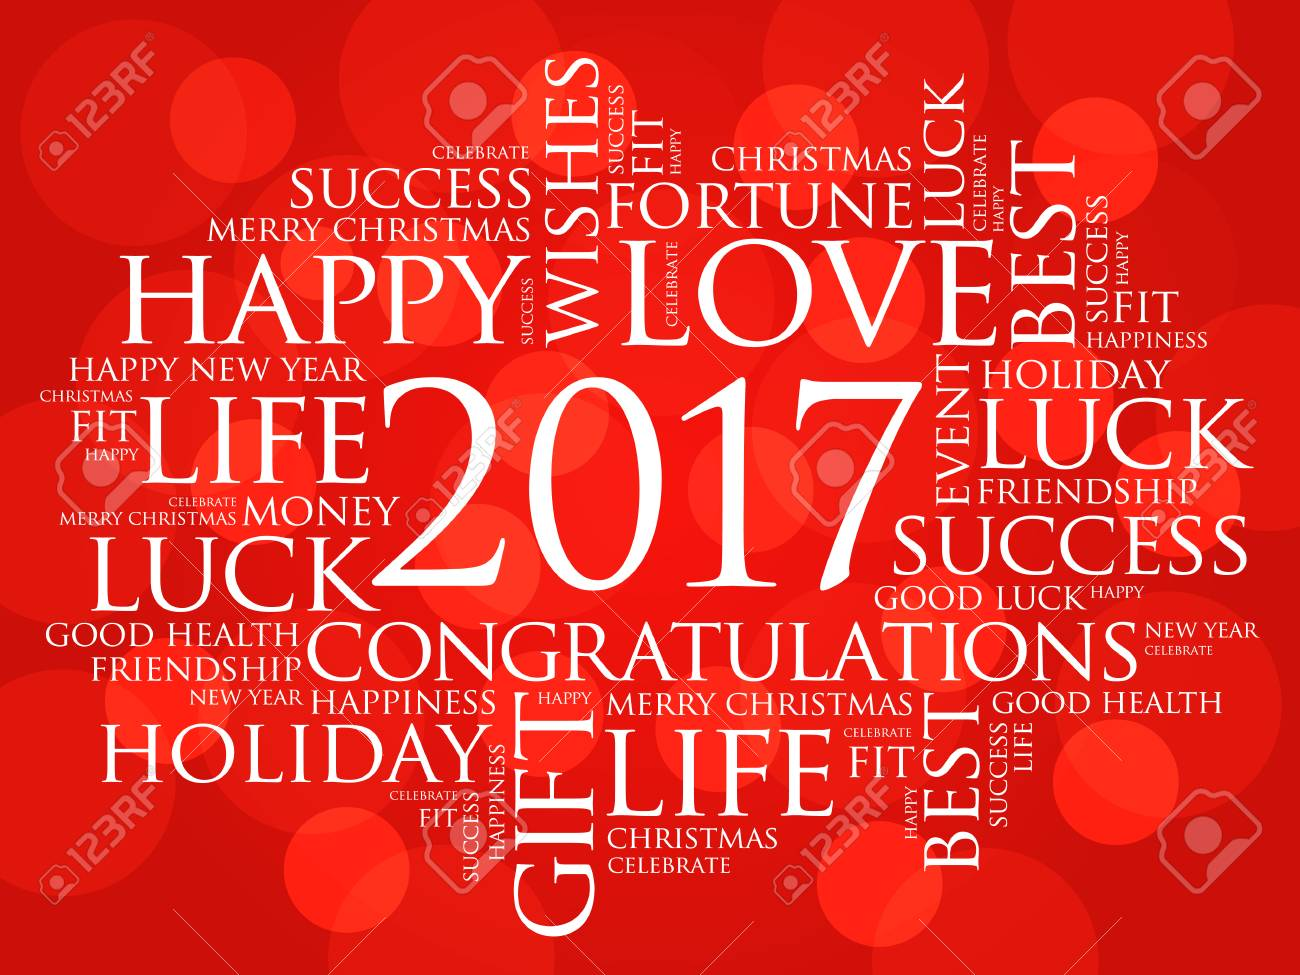 2017 year greeting word cloud collage happy new year celebration 2017 year greeting word cloud collage happy new year celebration greeting card stock vector kristyandbryce Image collections